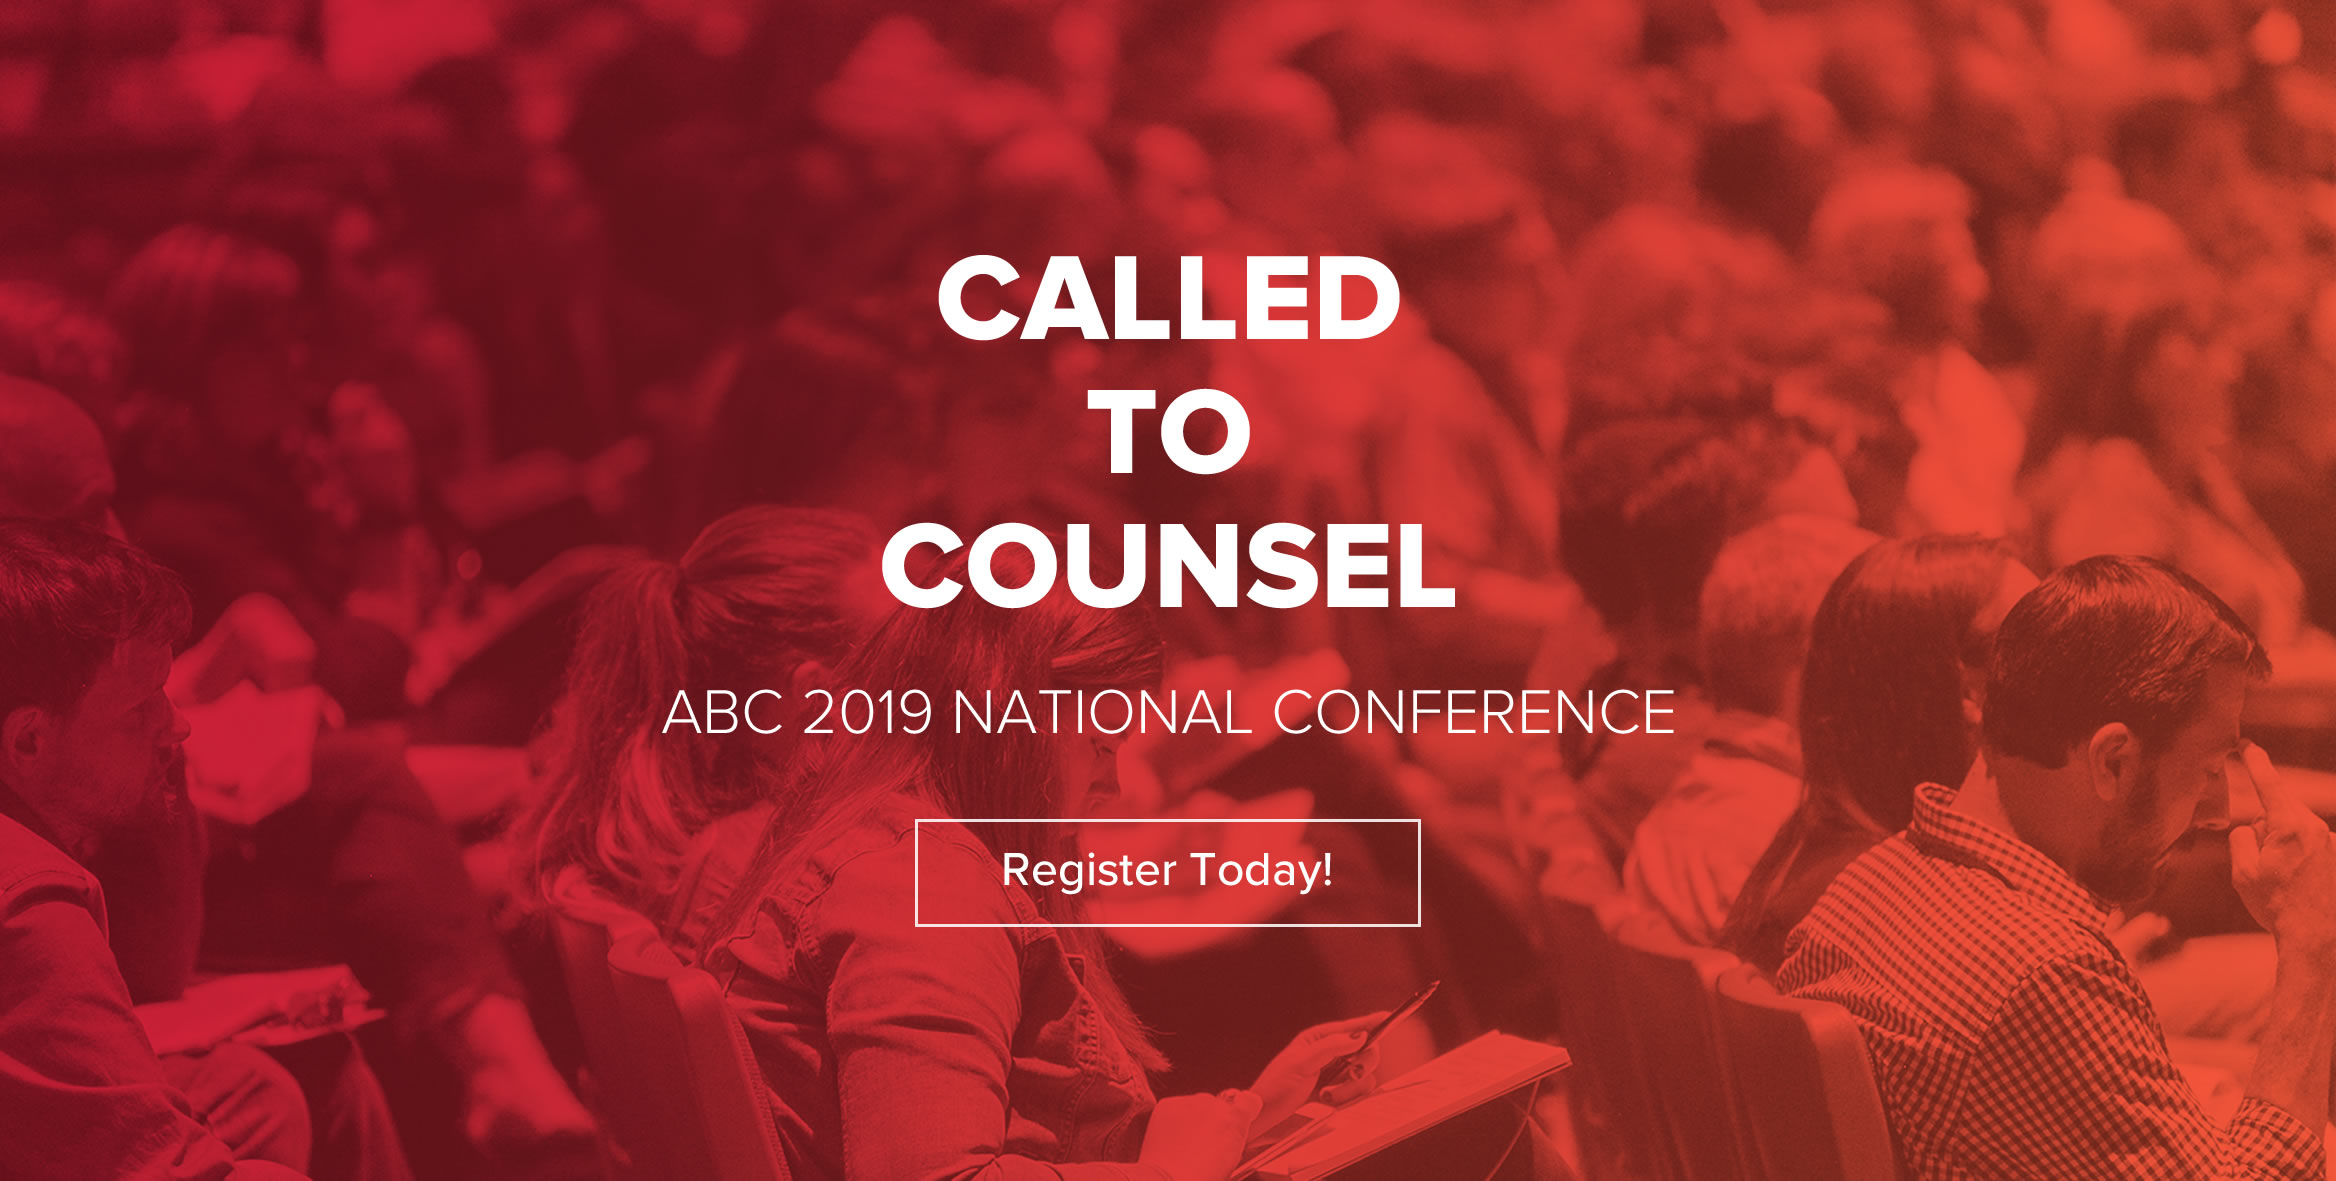 ABC 2019 National Conference